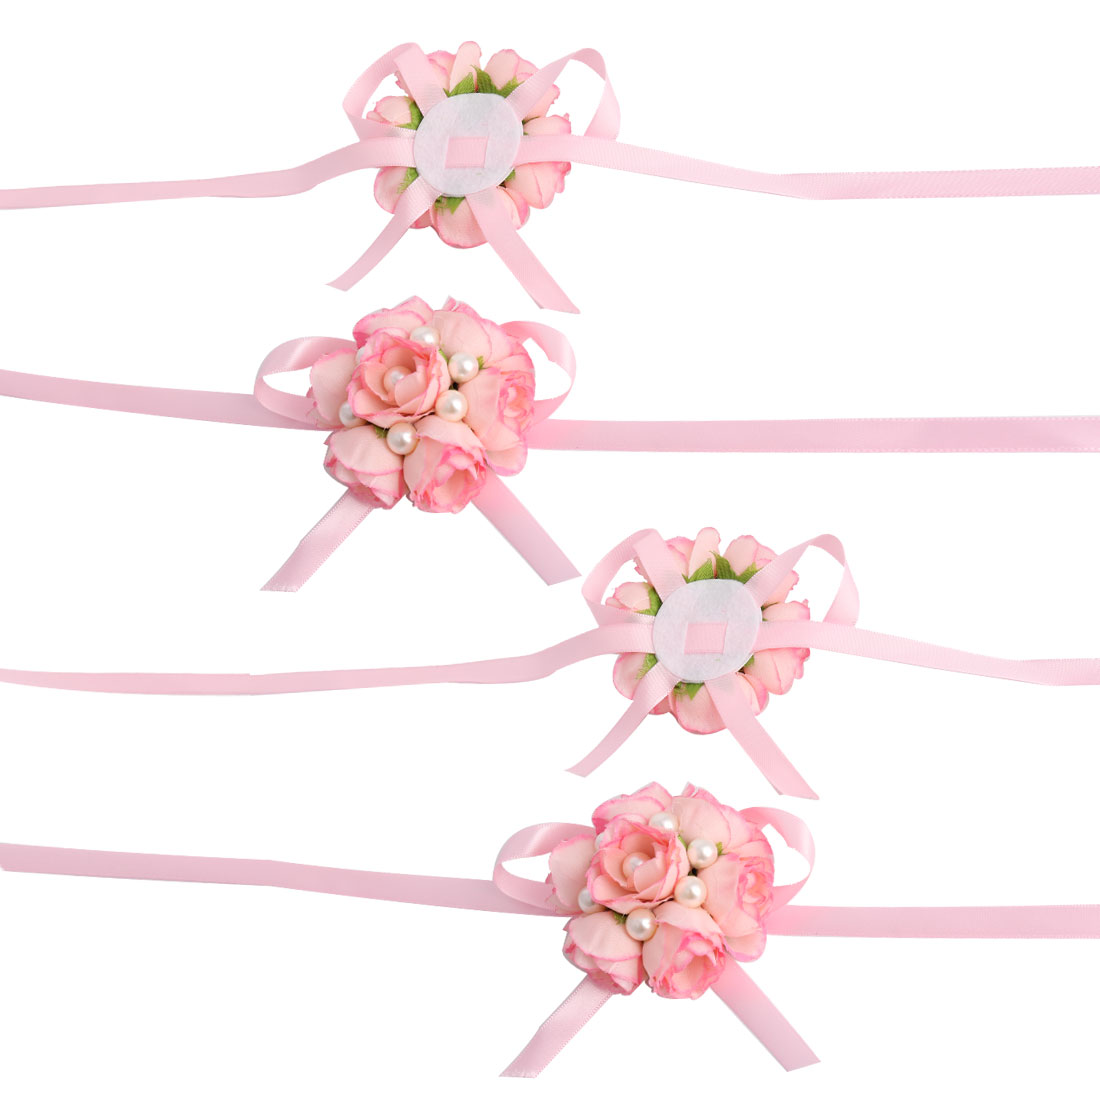 Wedding Party Fabric Rose Shaped Imitation Pearl Decor Wrist Flower Pink 4 Pcs